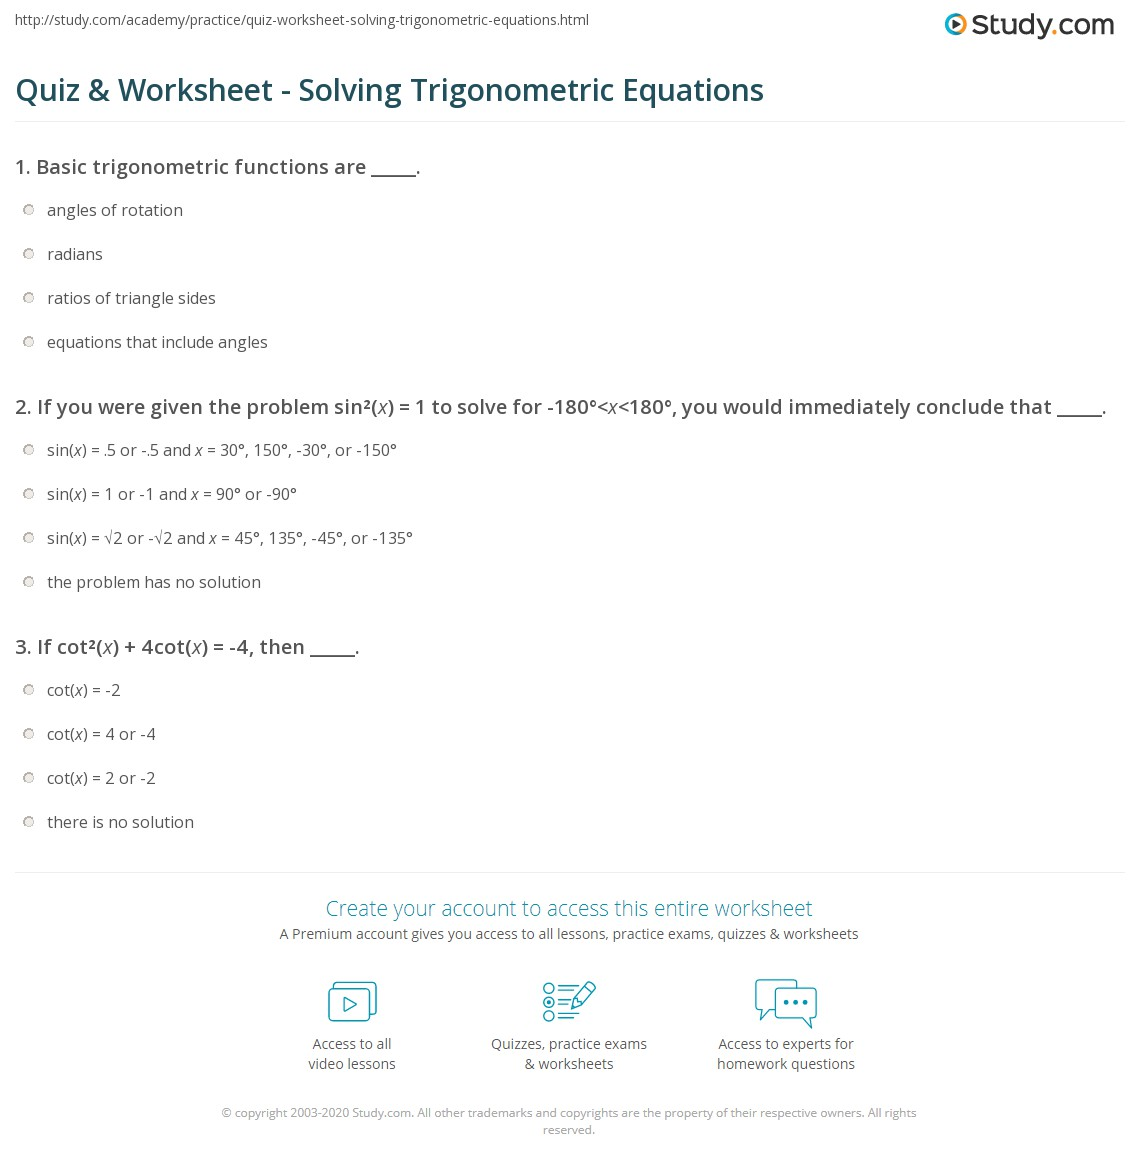 quiz worksheet solving trigonometric equations. Black Bedroom Furniture Sets. Home Design Ideas